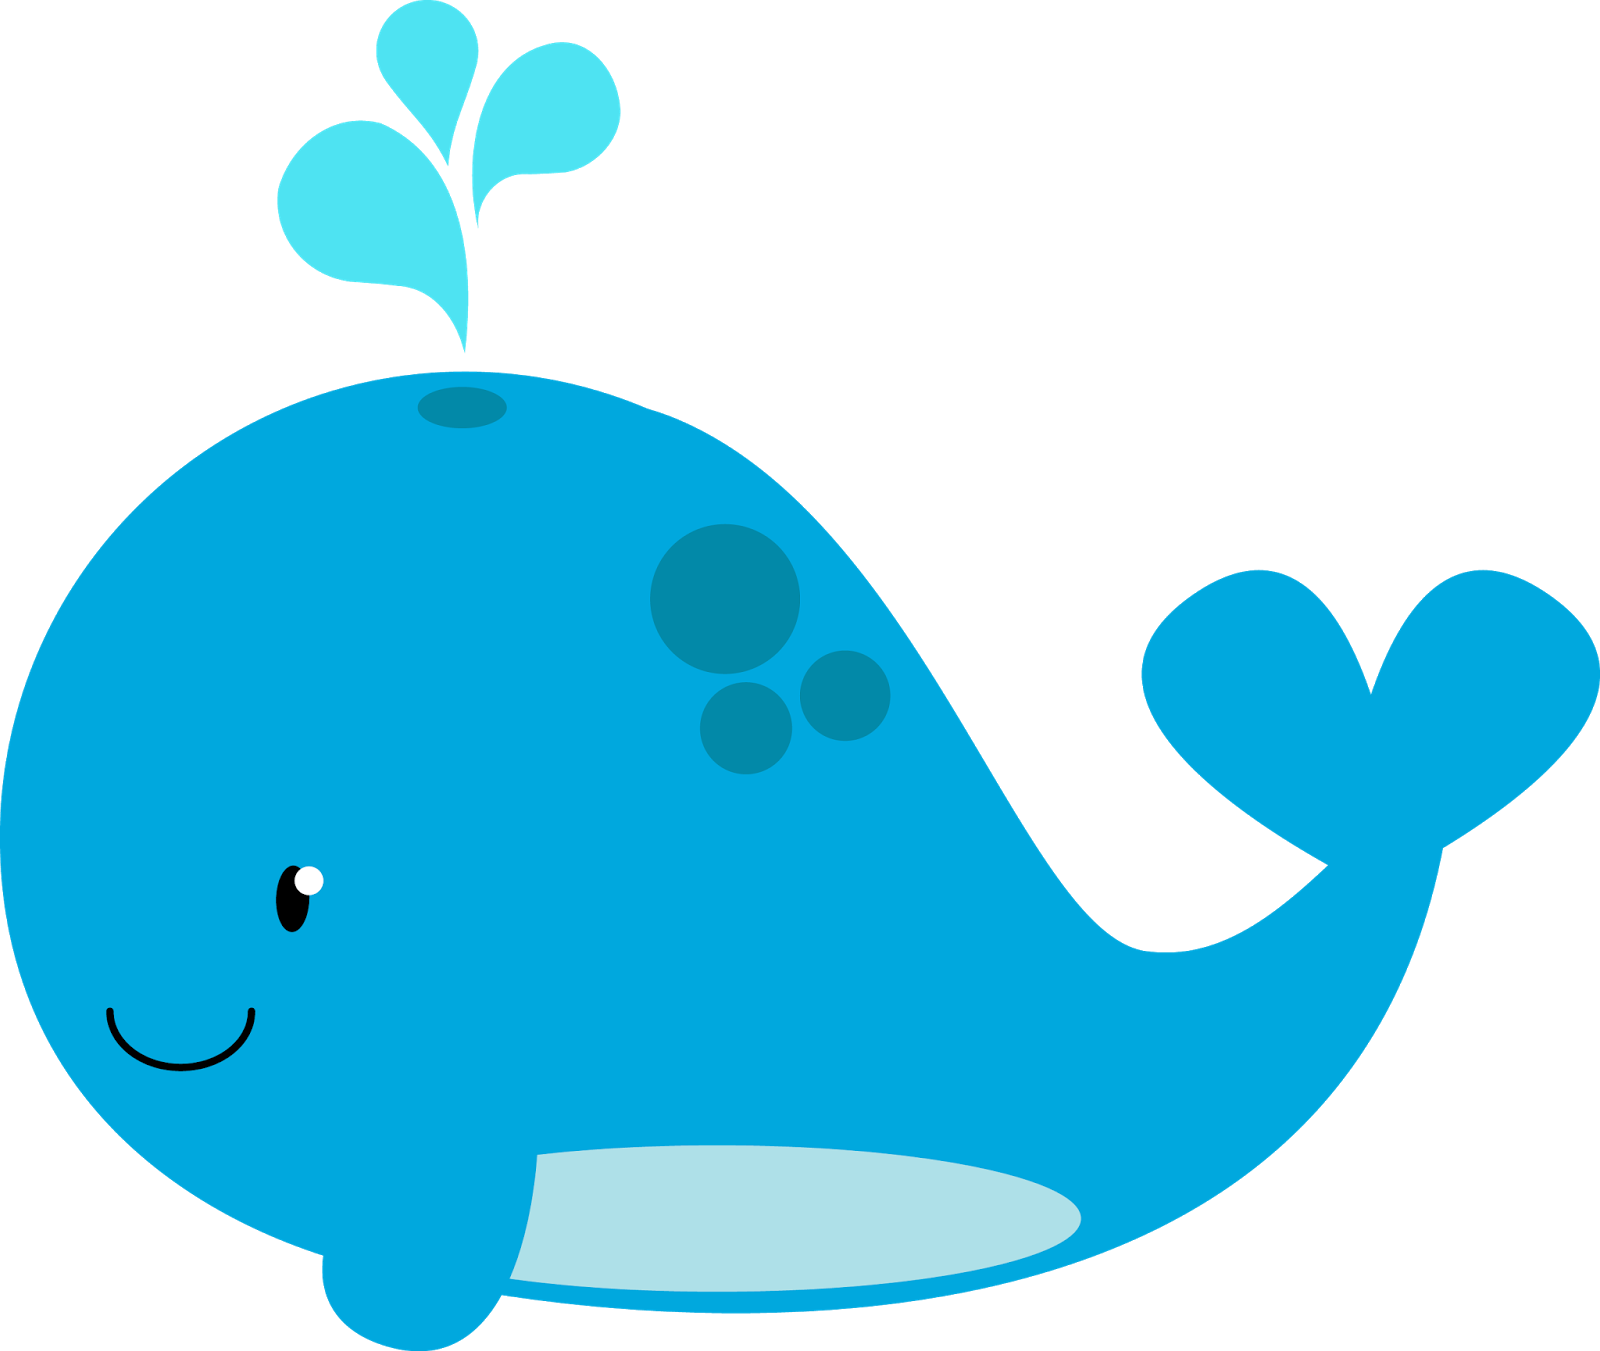 oliveira fashionando fundo do mar png Baby Whale Clip Art cute baby whale clip art